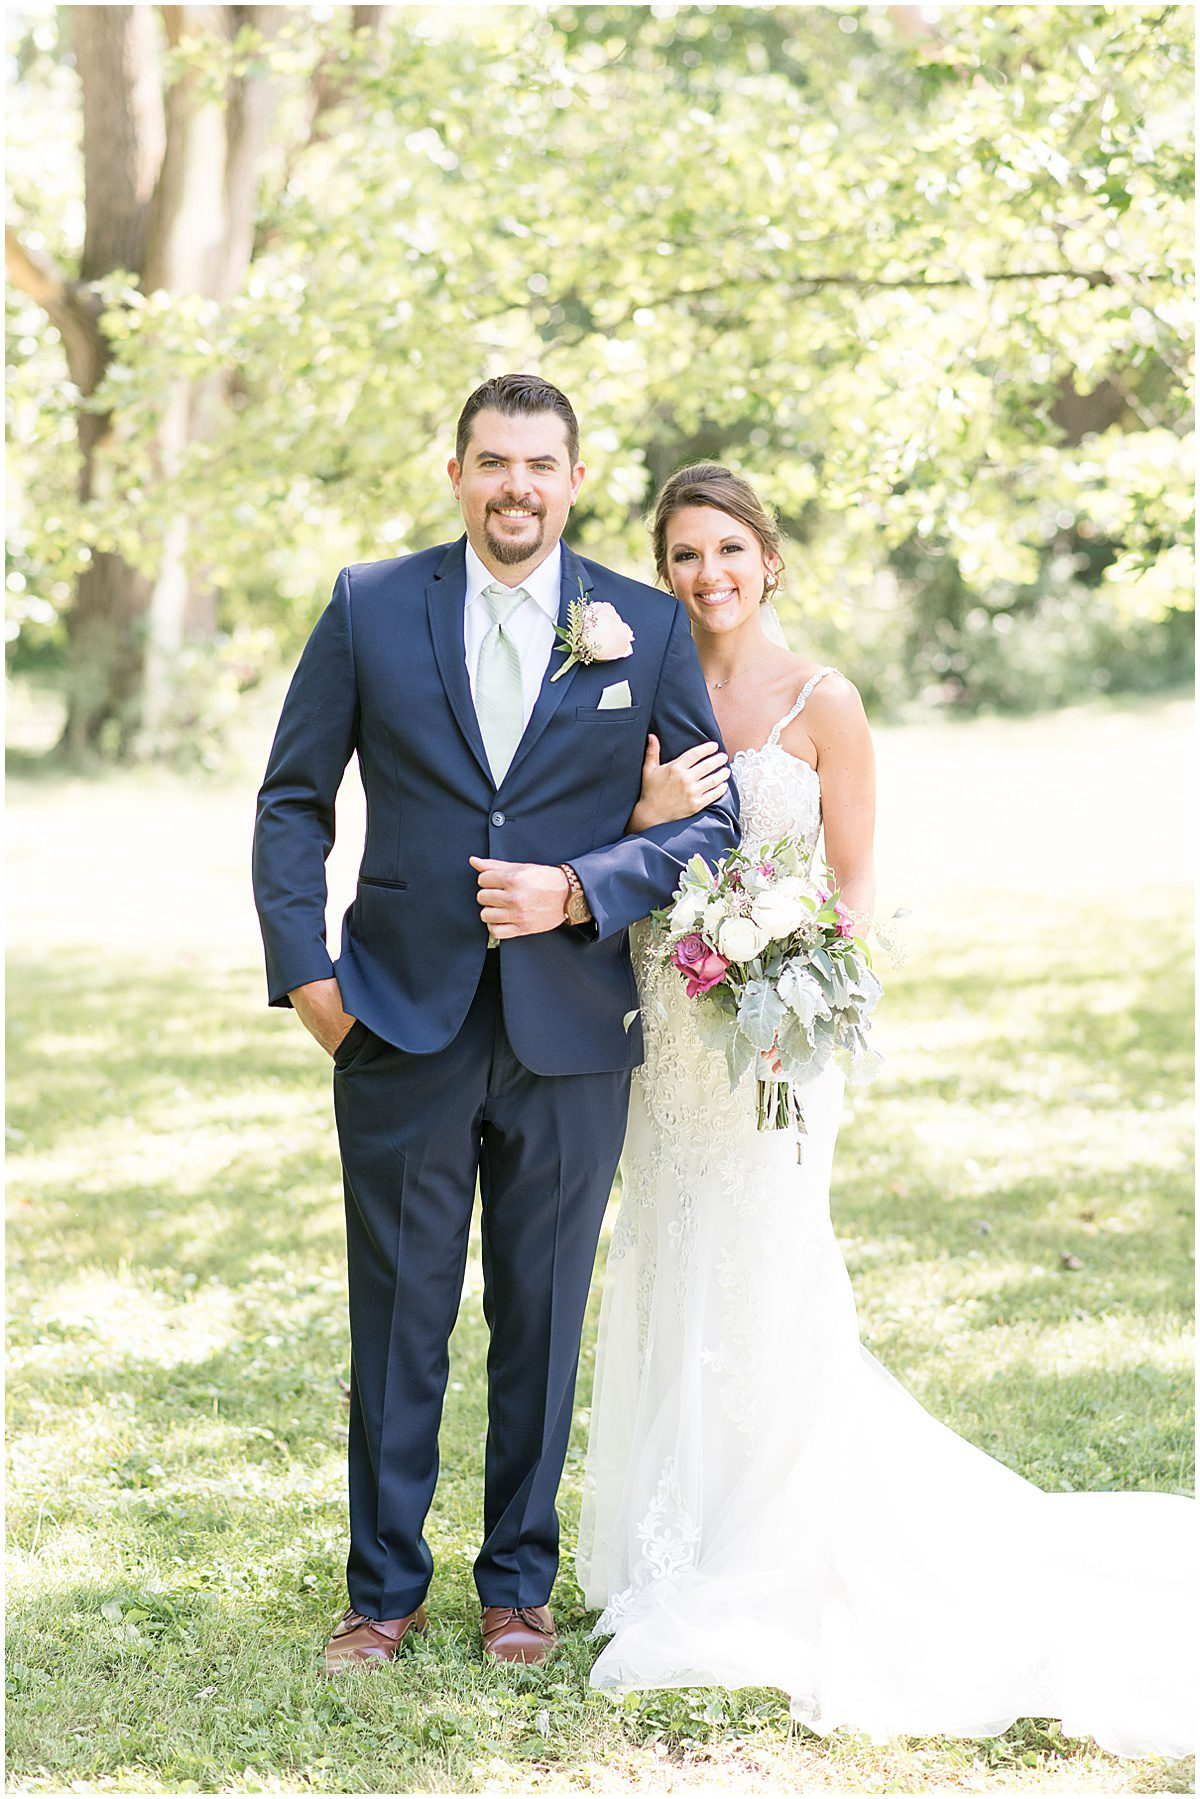 Bride and groom photos at Rensseler, Indiana wedding by Victoria Rayburn Photography